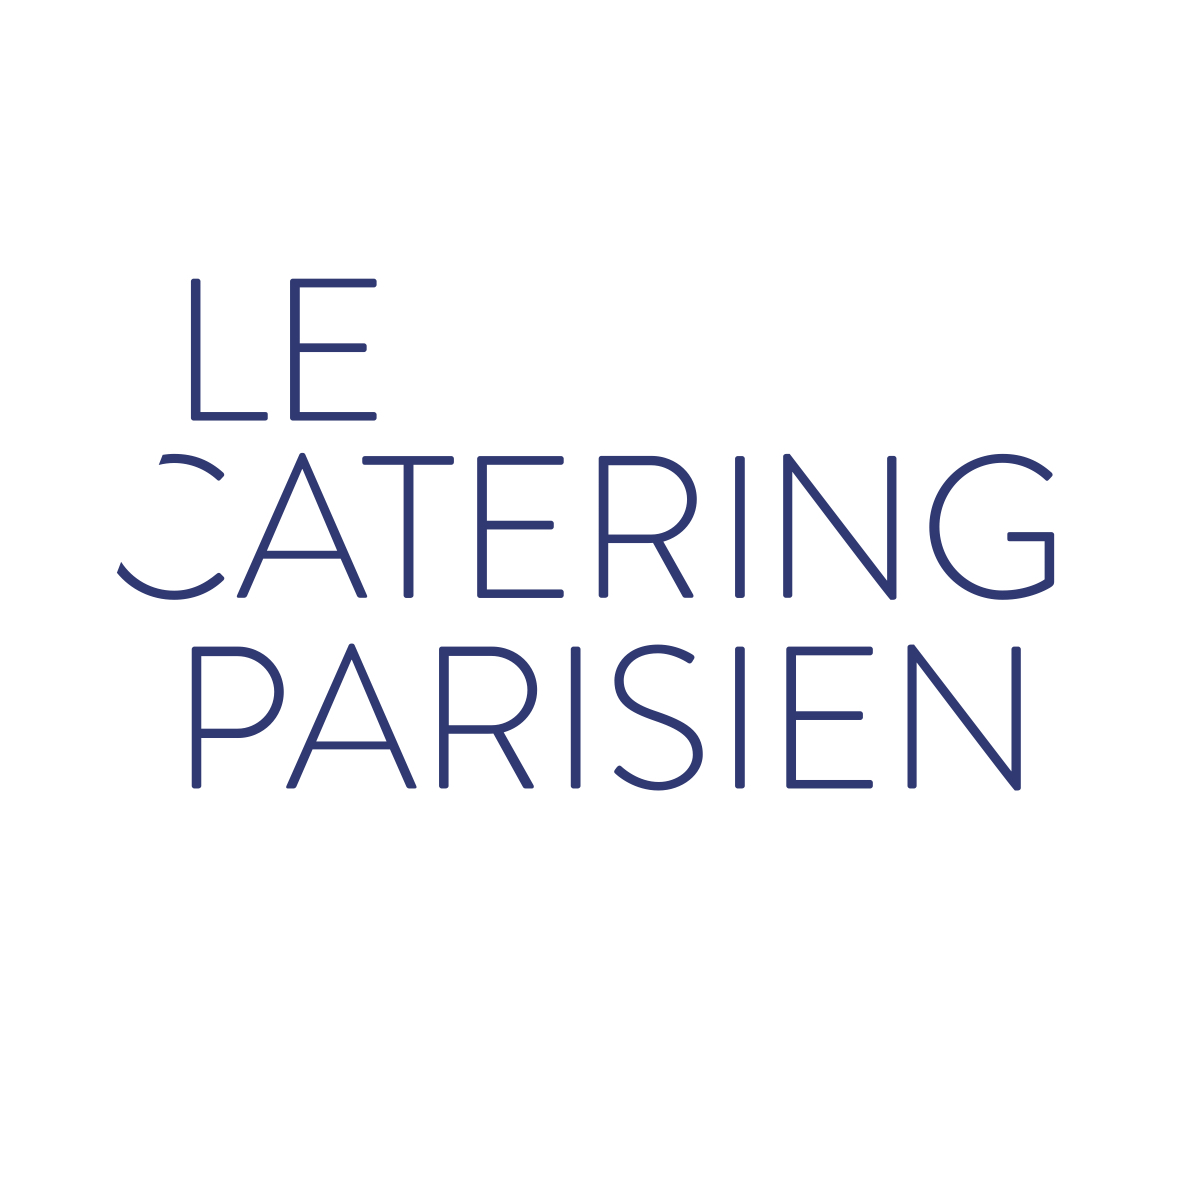 Parisian catering